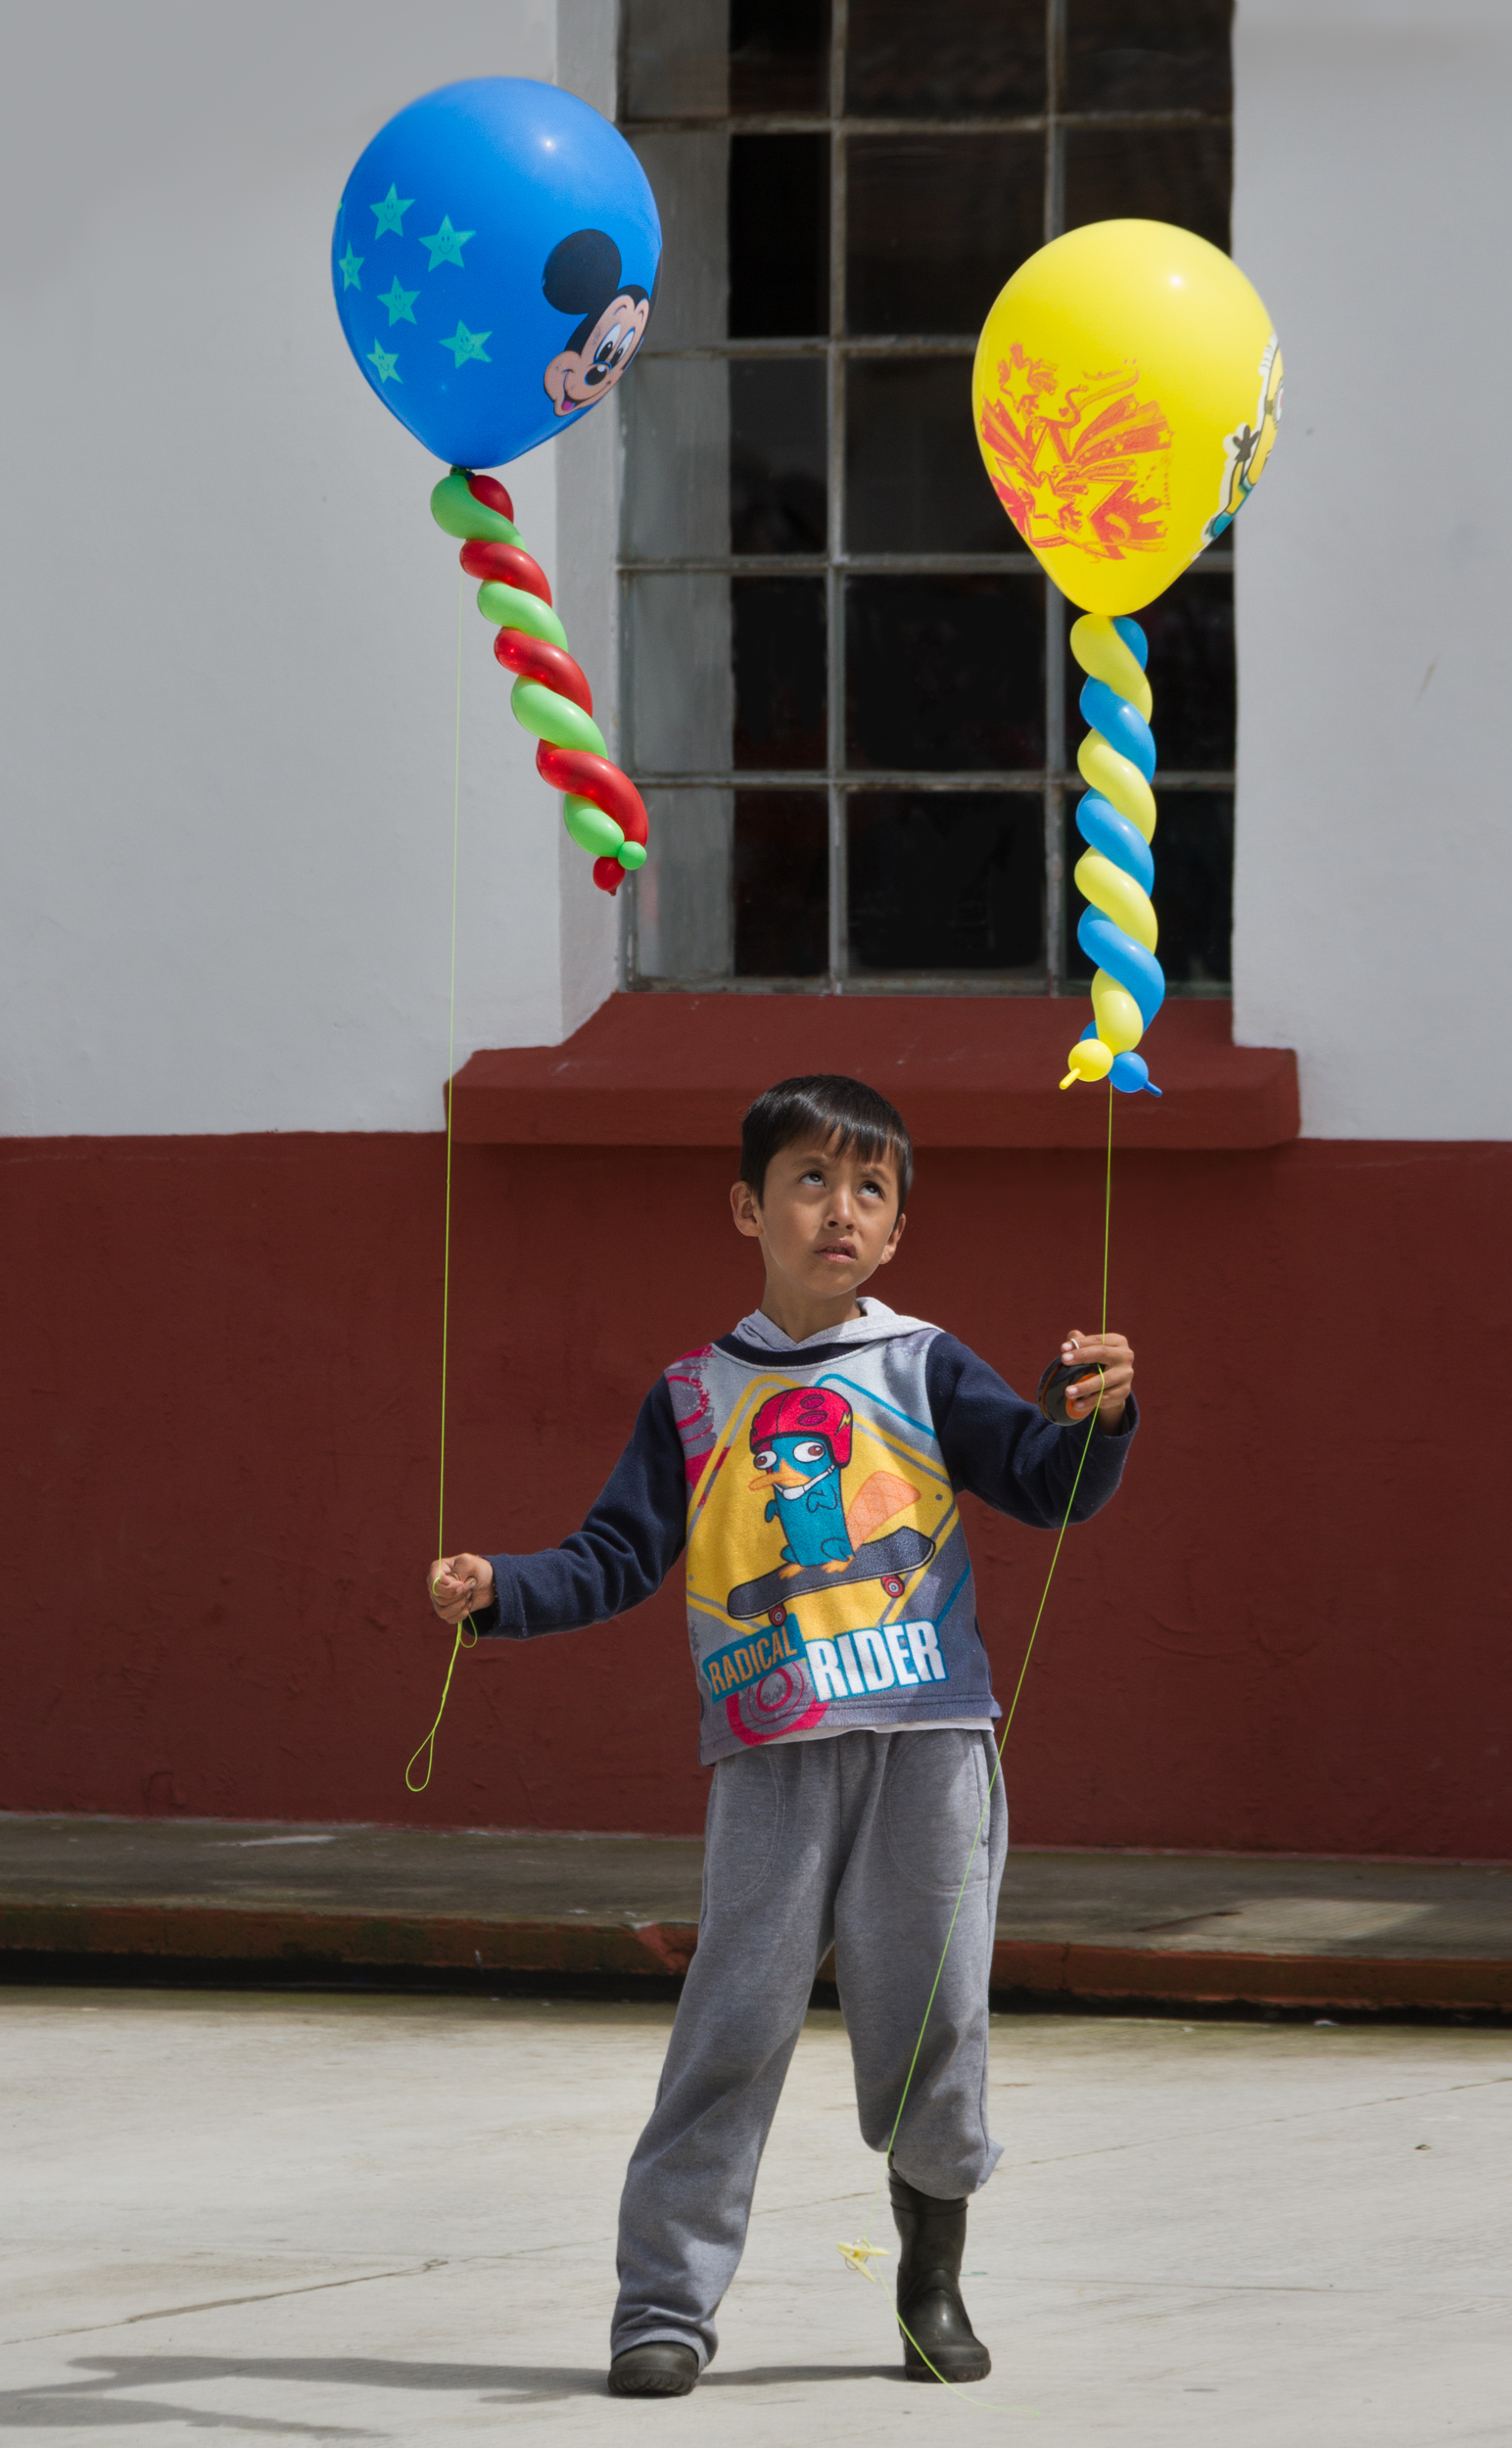 Boy with Two Balloons    CantoyaFest: Paracho, Michoacán, Mexico — Sunday, July 20, 2014